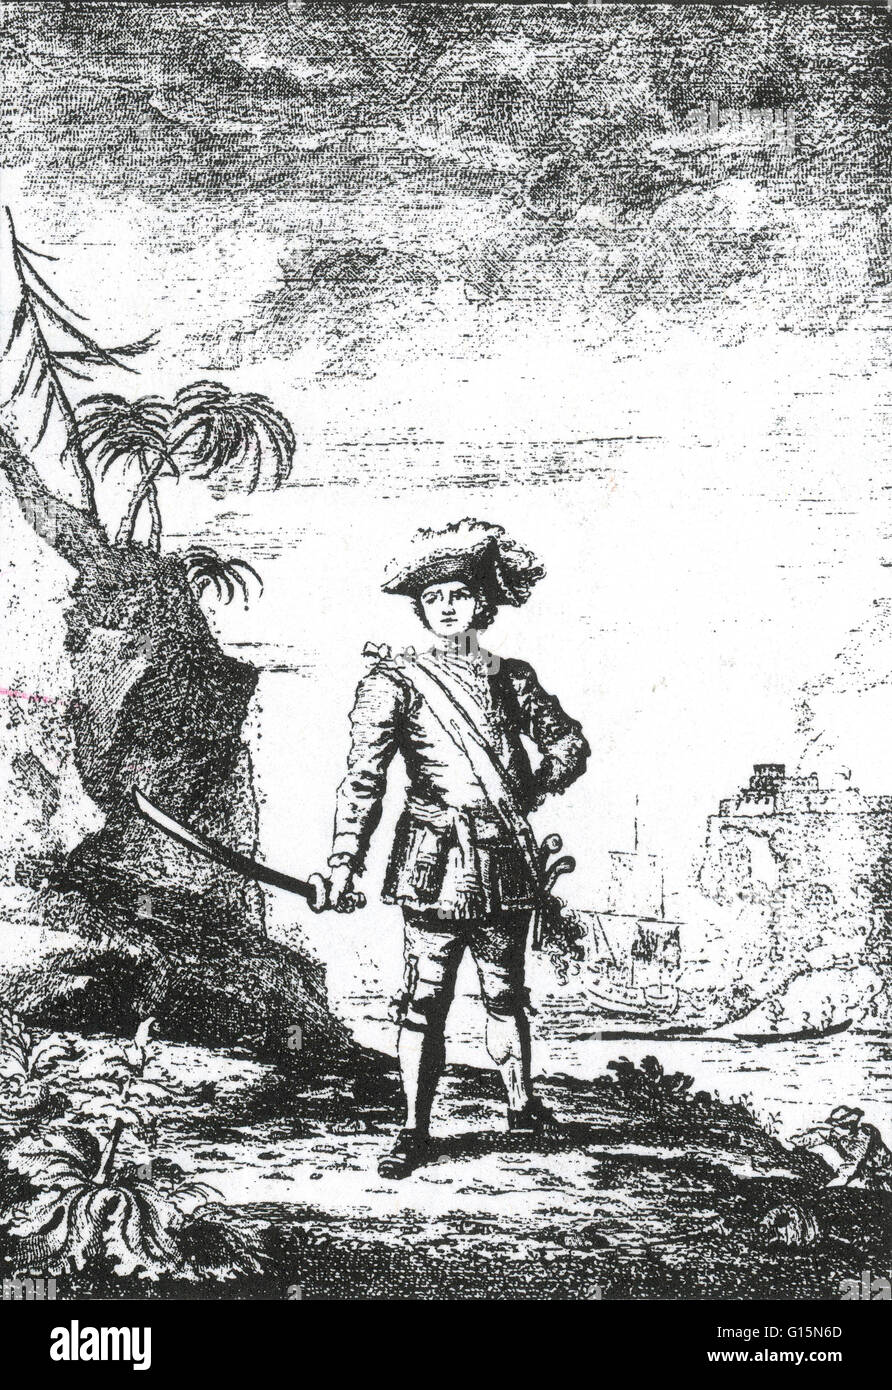 Bartholomew Roberts (1682-1722) was a Welsh pirate who raided ships off America and West Africa between 1719 and - Stock Image